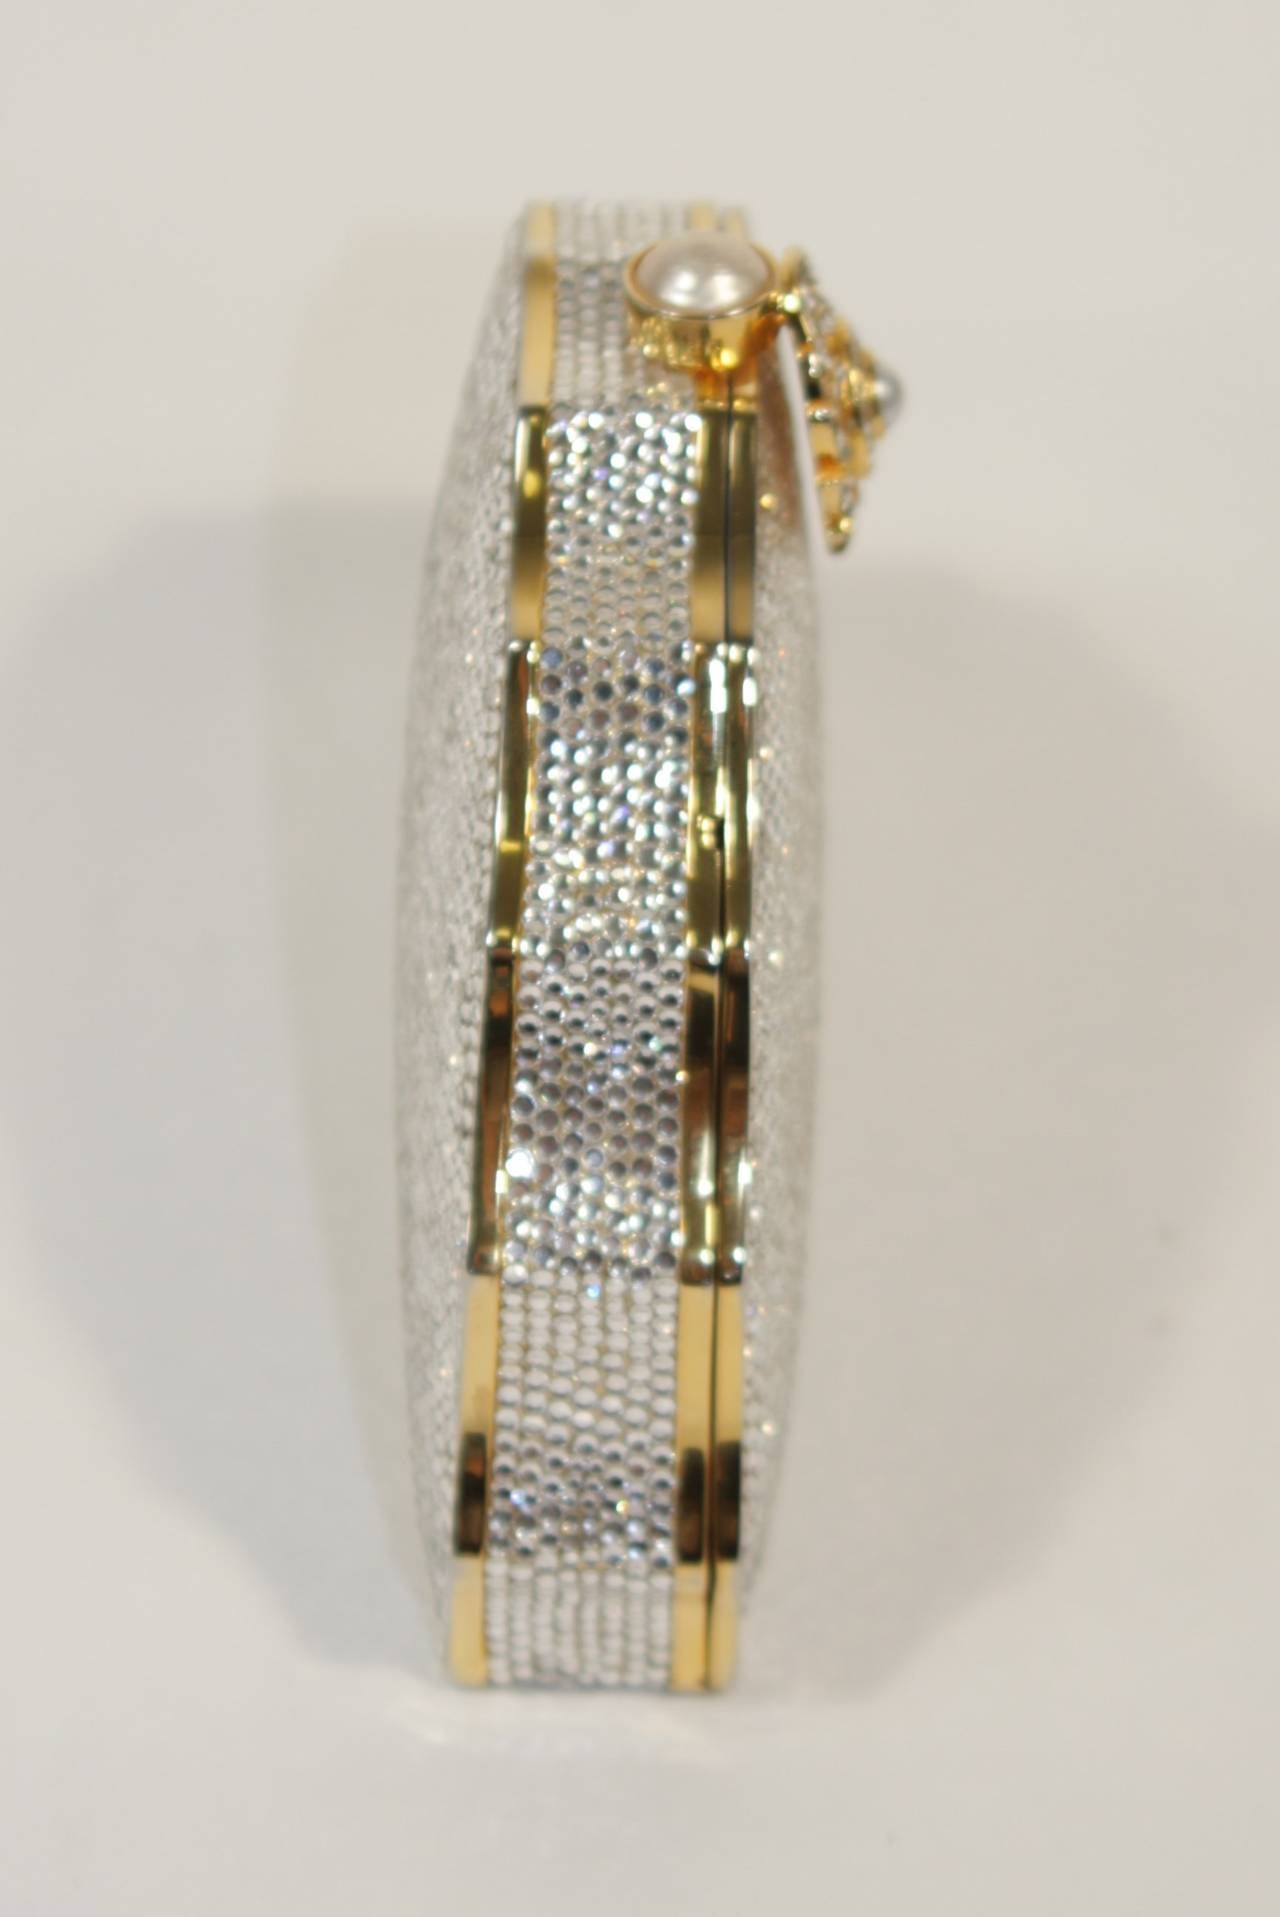 JUDITH LEIBER Classic Pave Rhinestone Minaudiare  with Chain Strap & Gold Detail For Sale 3